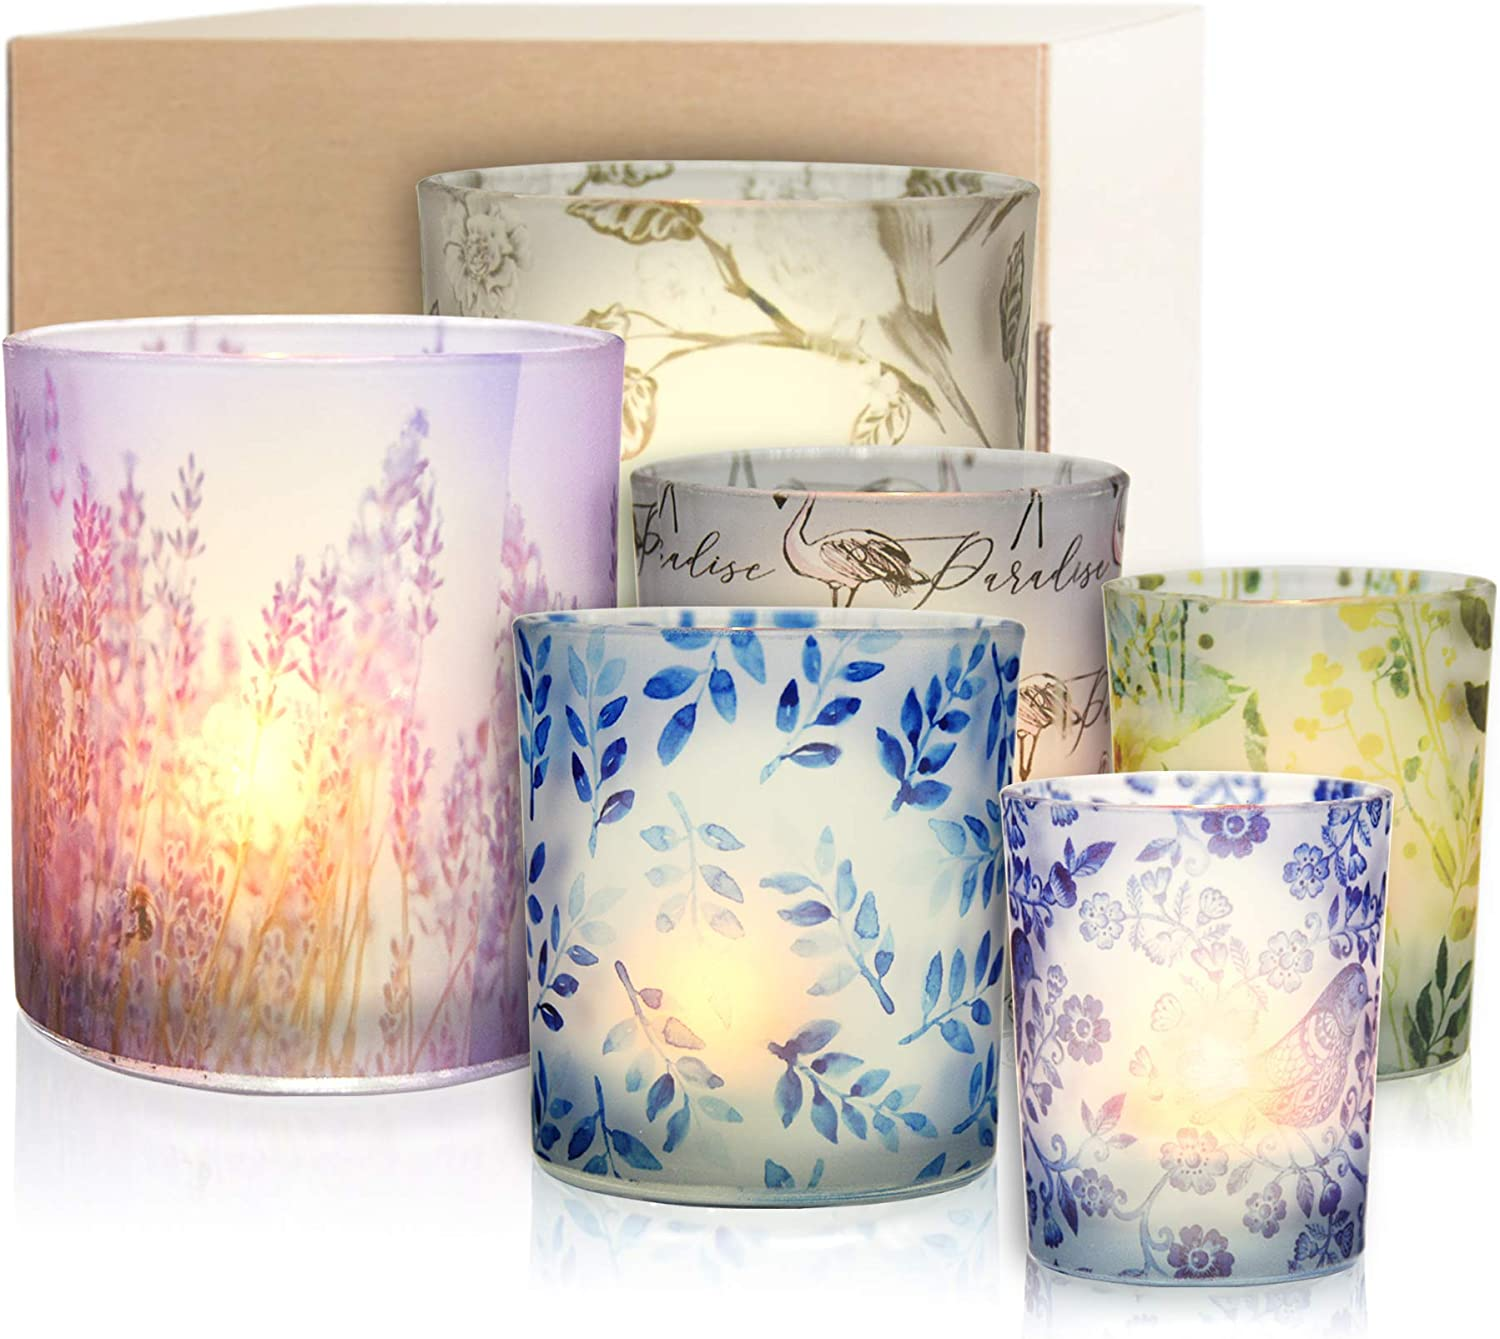 Rancco Scented Candle Holders Set of Tealight 6 Frosted Glass H OFFer Max 65% OFF